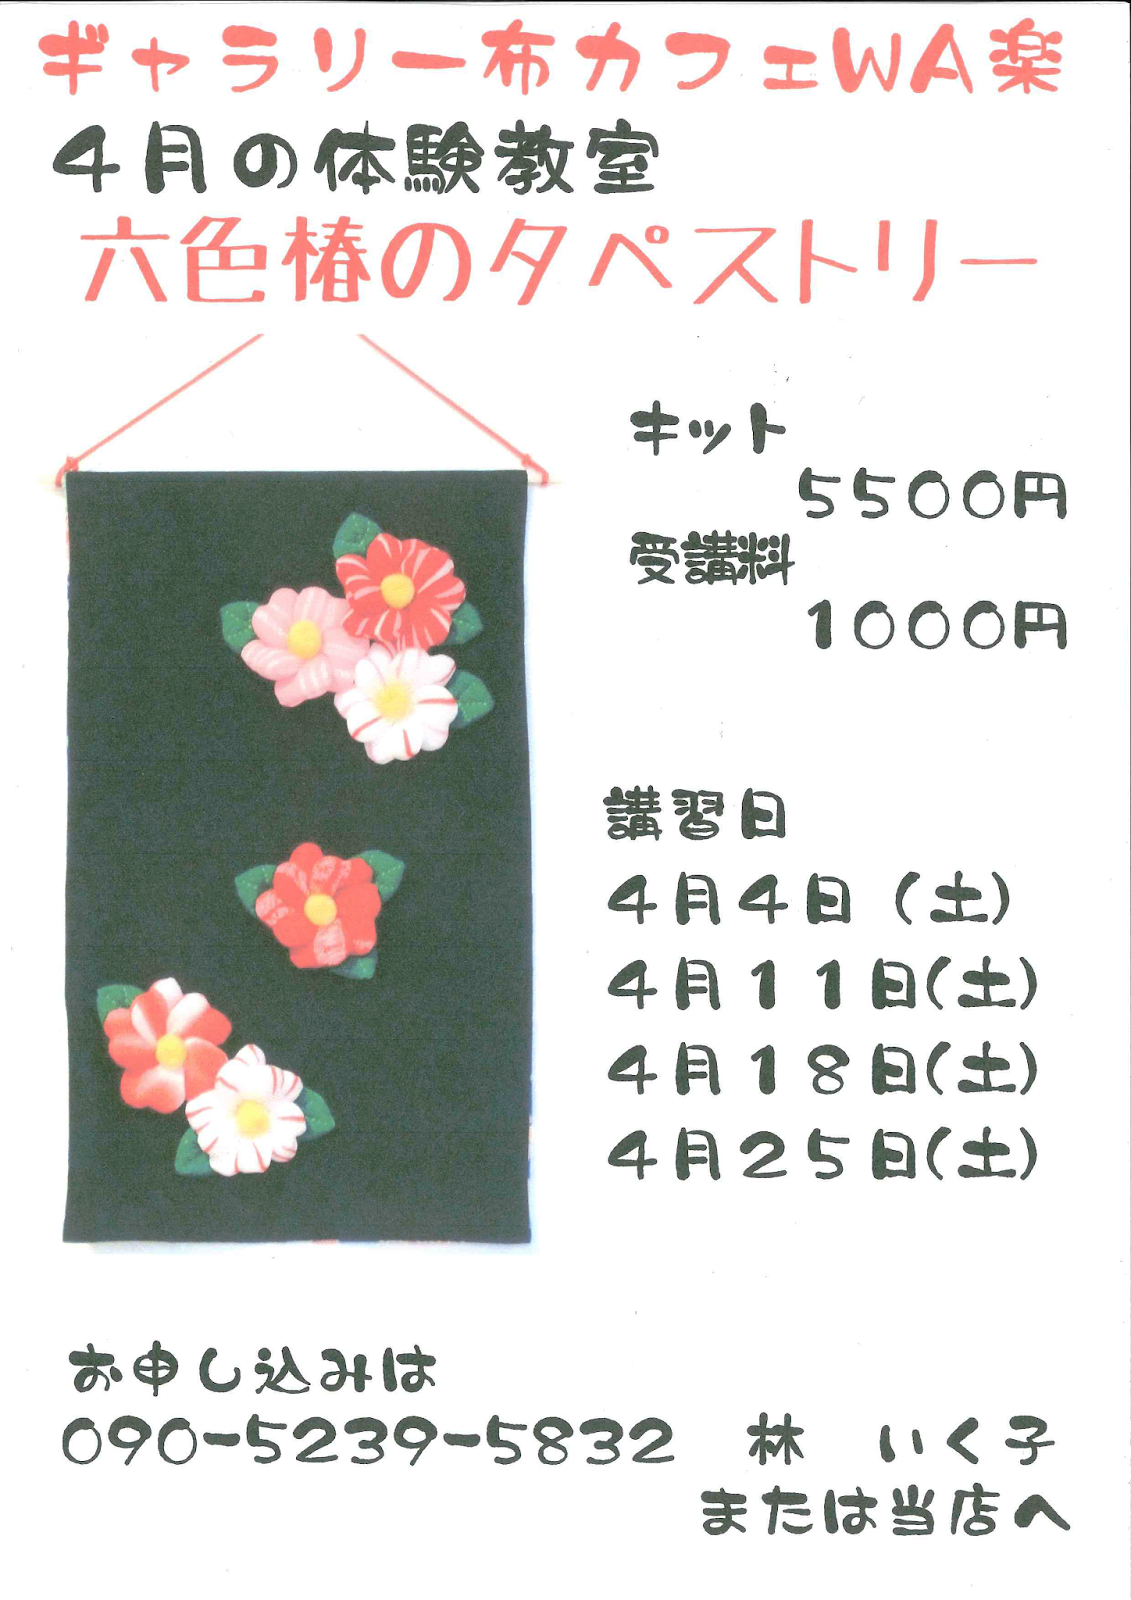 Towada Gallery & Cafe WARAKU April Handicrafts Trial Class 十和田市 ギャラリー布カフェWA楽 4月体験教室